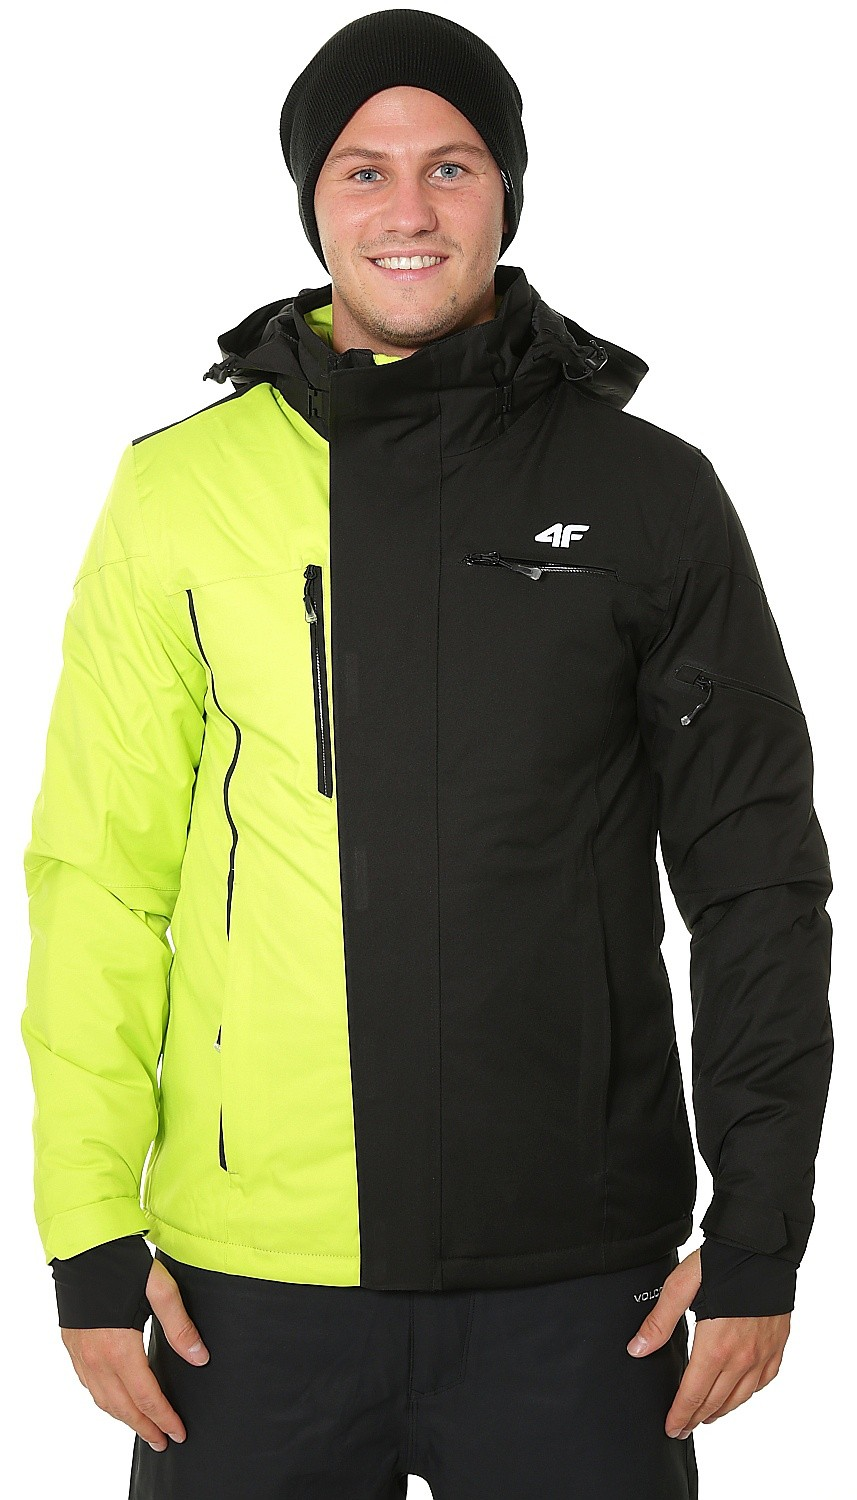 Green Eu X4z18 Men´s Canary Jacket 4f Neon Blackcomb Shop Kumn257 qpZdIBwWTp